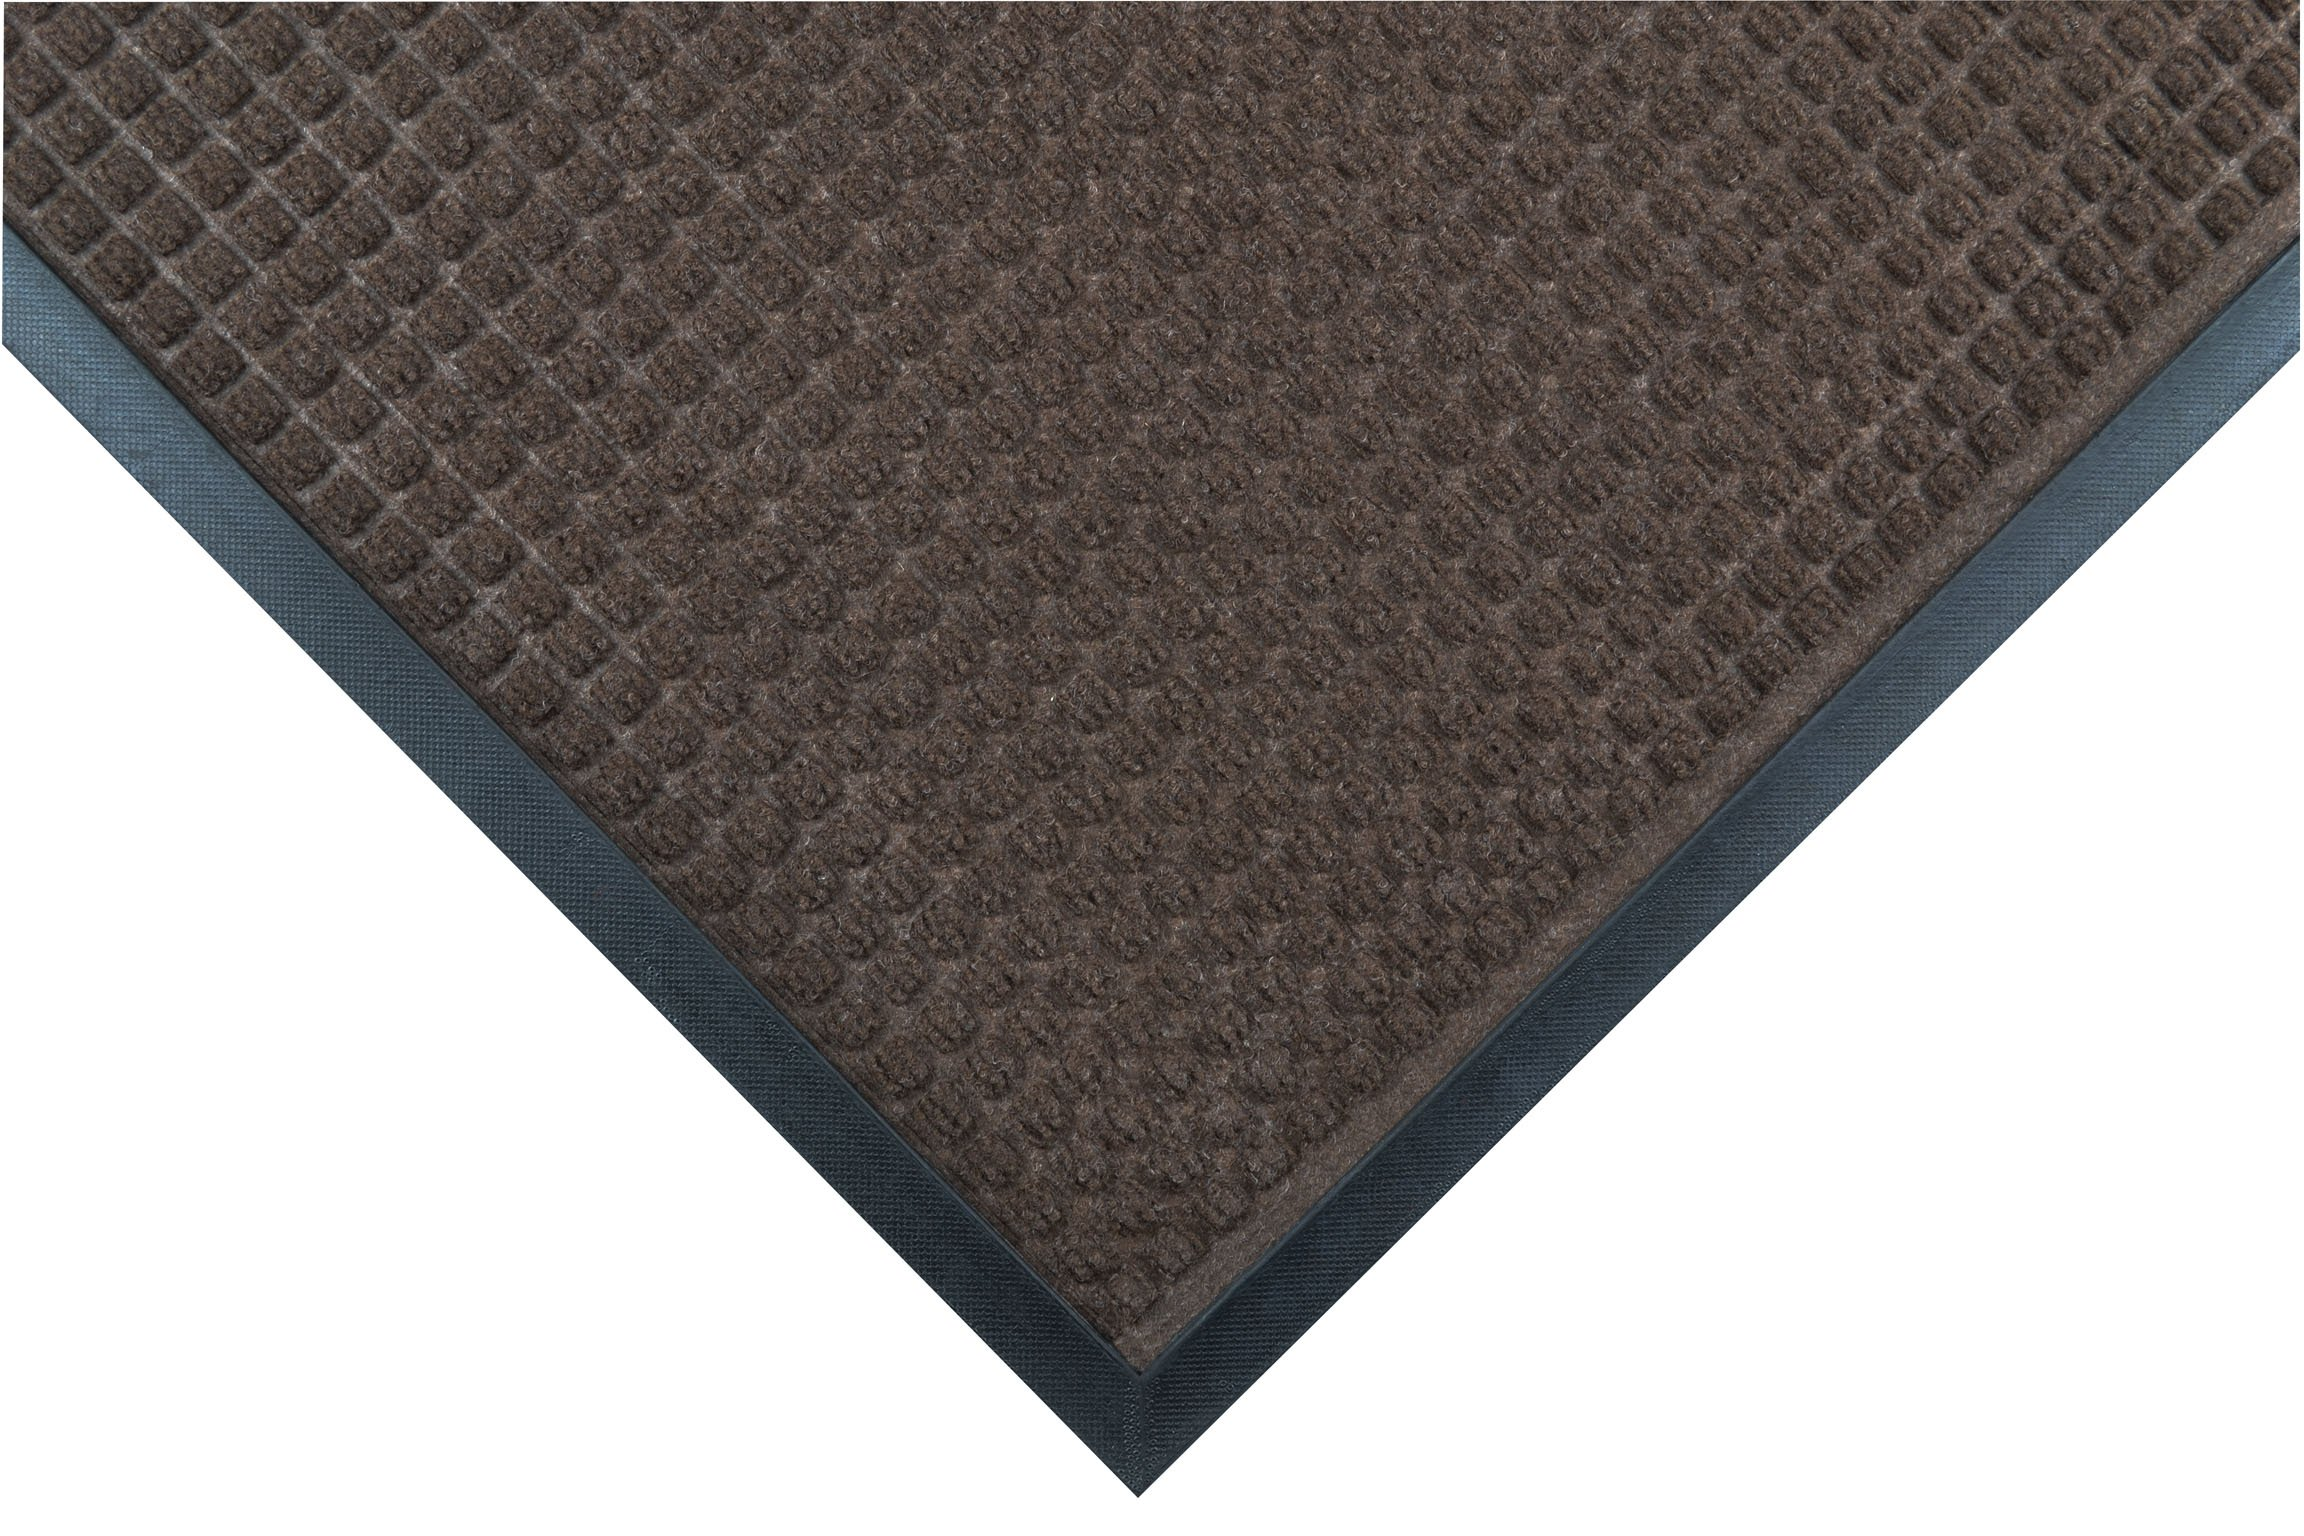 Notrax 166 Guzzler Entrance Mat, for Lobbies and Entranceways, 2' Width x 3' Length x 1/4'' Thickness, Brown